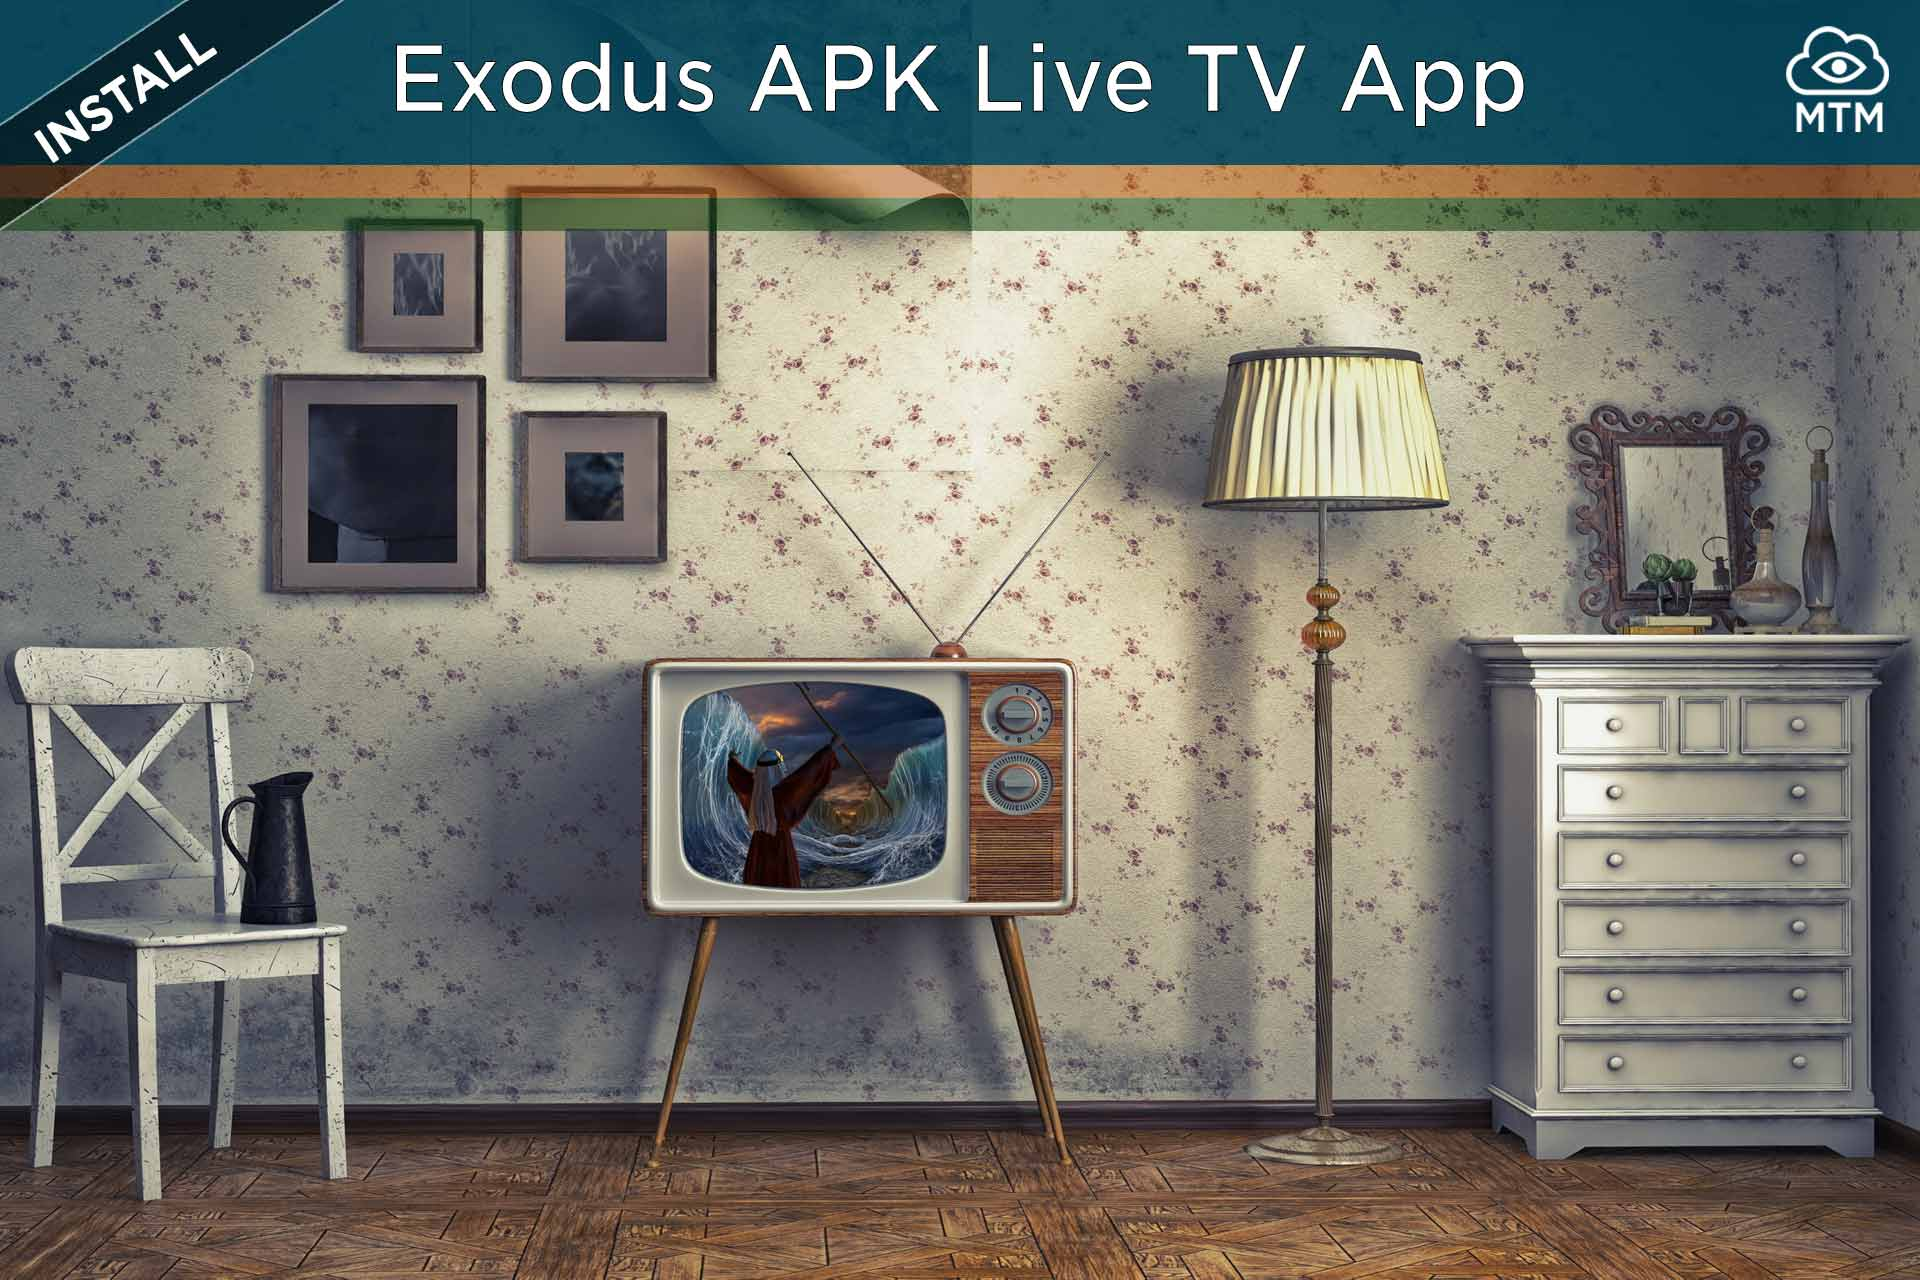 Exodus Live TV APK Download | Install for Free IPTV Streams Online